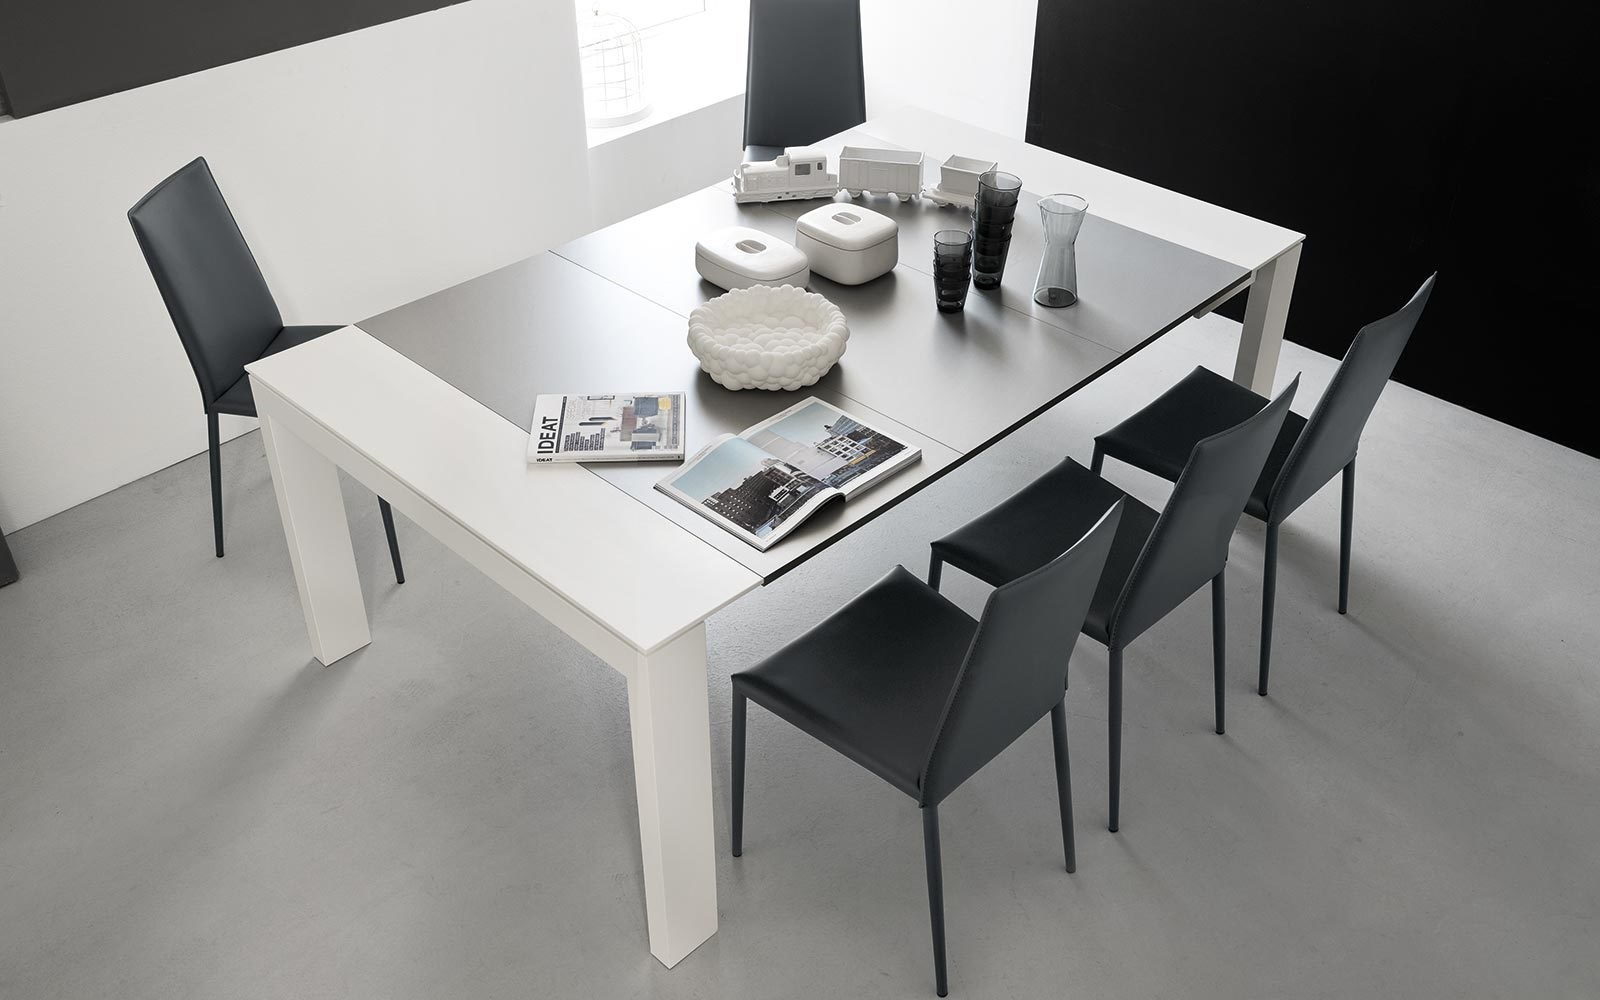 Calligaris Sigma Consolle.Connubia By Calligaris Sigma Consolle Cb 4069 Xll 100 Table